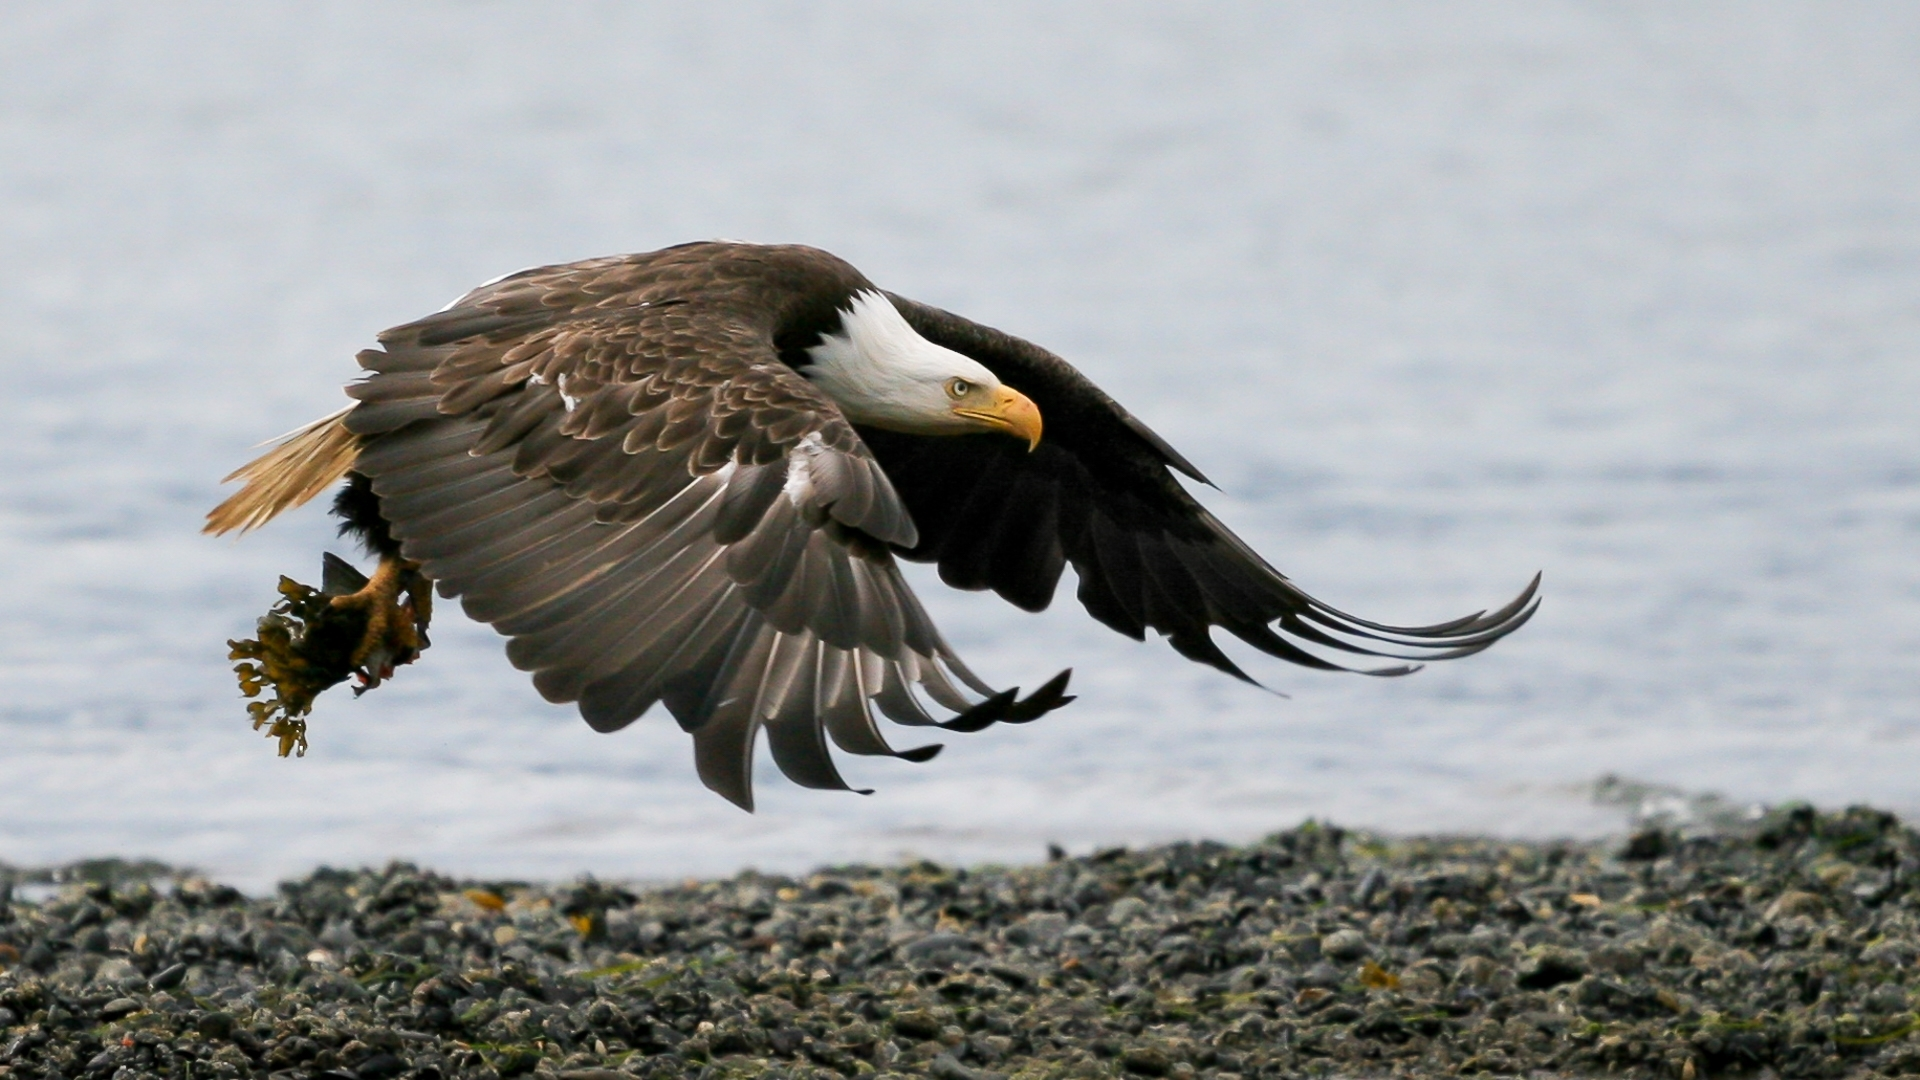 A-bald-eagle-soars-clutching-the-remains-of-a-half-eaten-fish.-Homer-Spit-Al-NB-1-Place-by-Herbert-Gaidus-SR